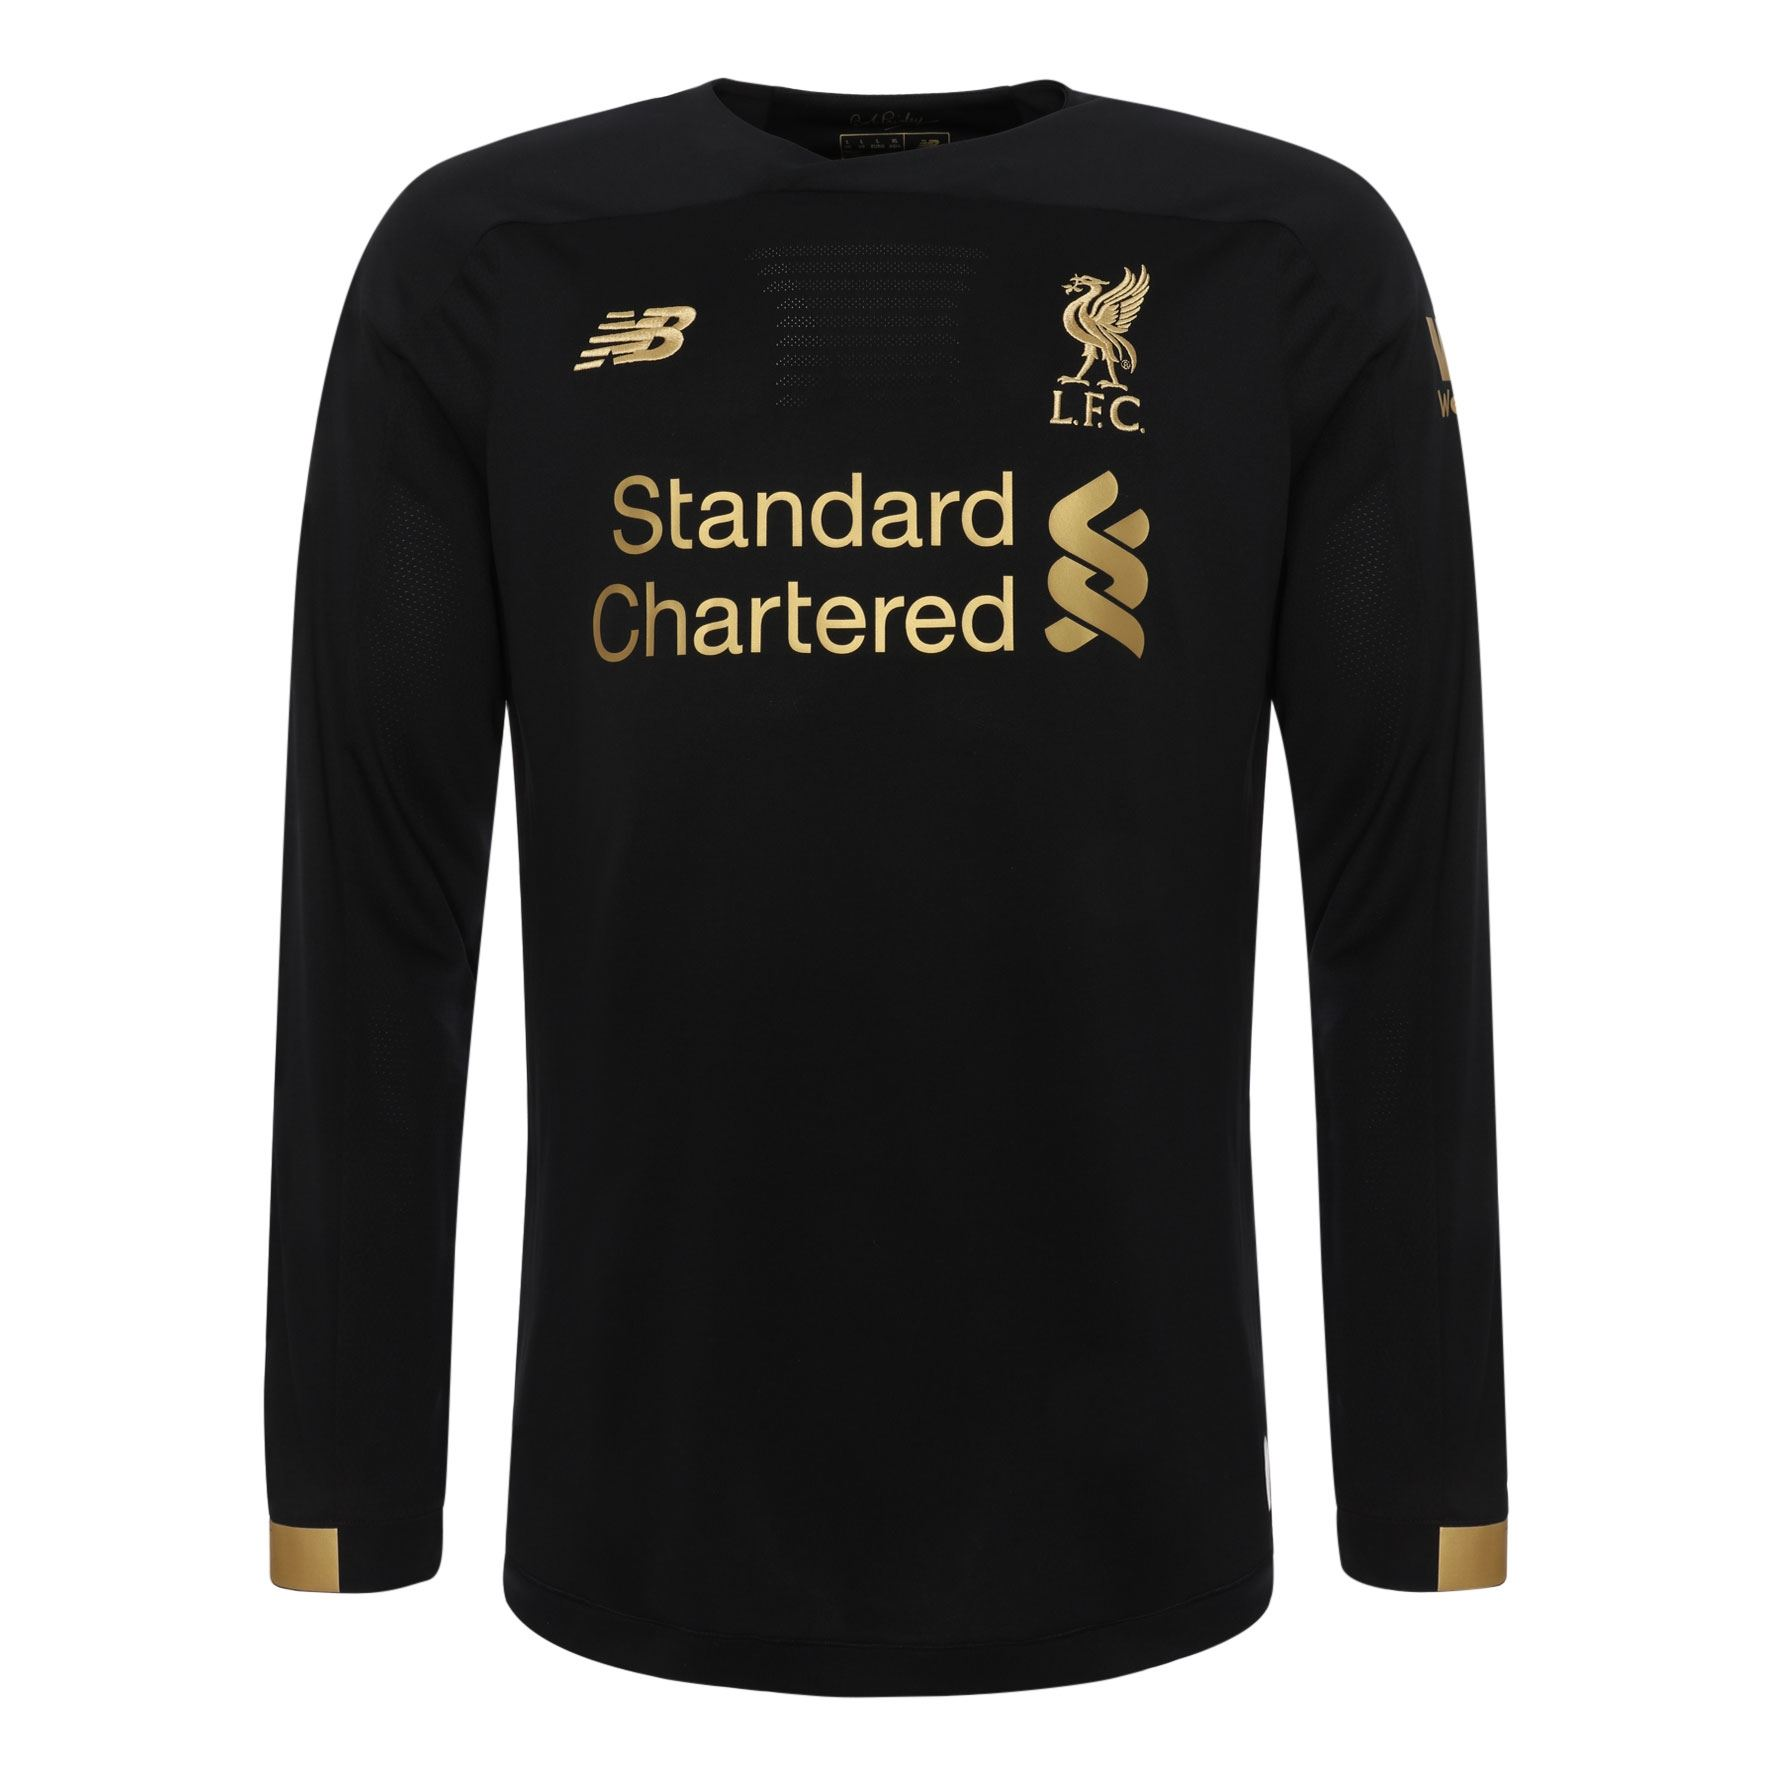 1c45c46f984 Details about Liverpool FC Home Kit Black Boys Soccer Goalkeeper Shirt  19 20 LFC Official